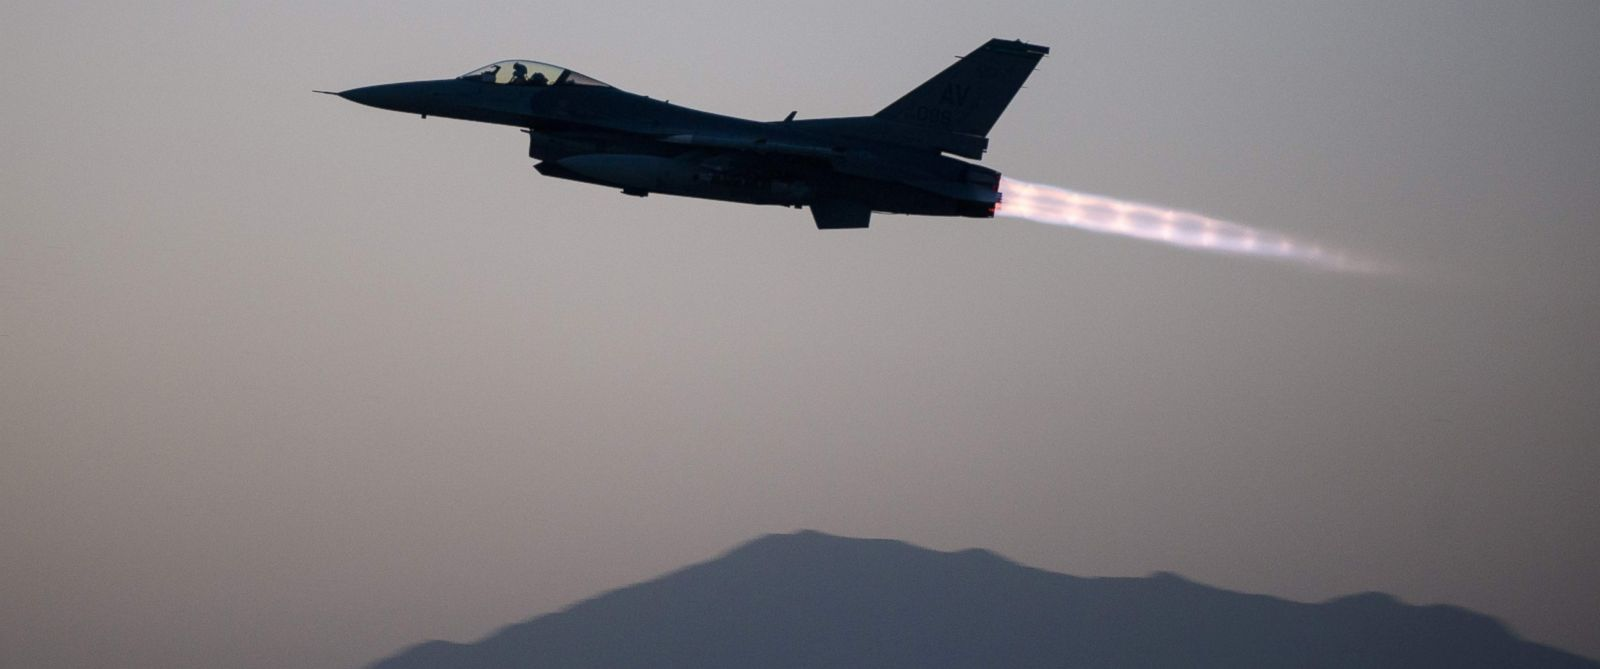 PHOTO: A U.S. Air Force F-16 Fighting Falcon aircraft assigned to the 555th Expeditionary Fighter Squadron taking off on a combat sortie from Bagram Air Field, Afghanistan, Sept. 6, 2015.